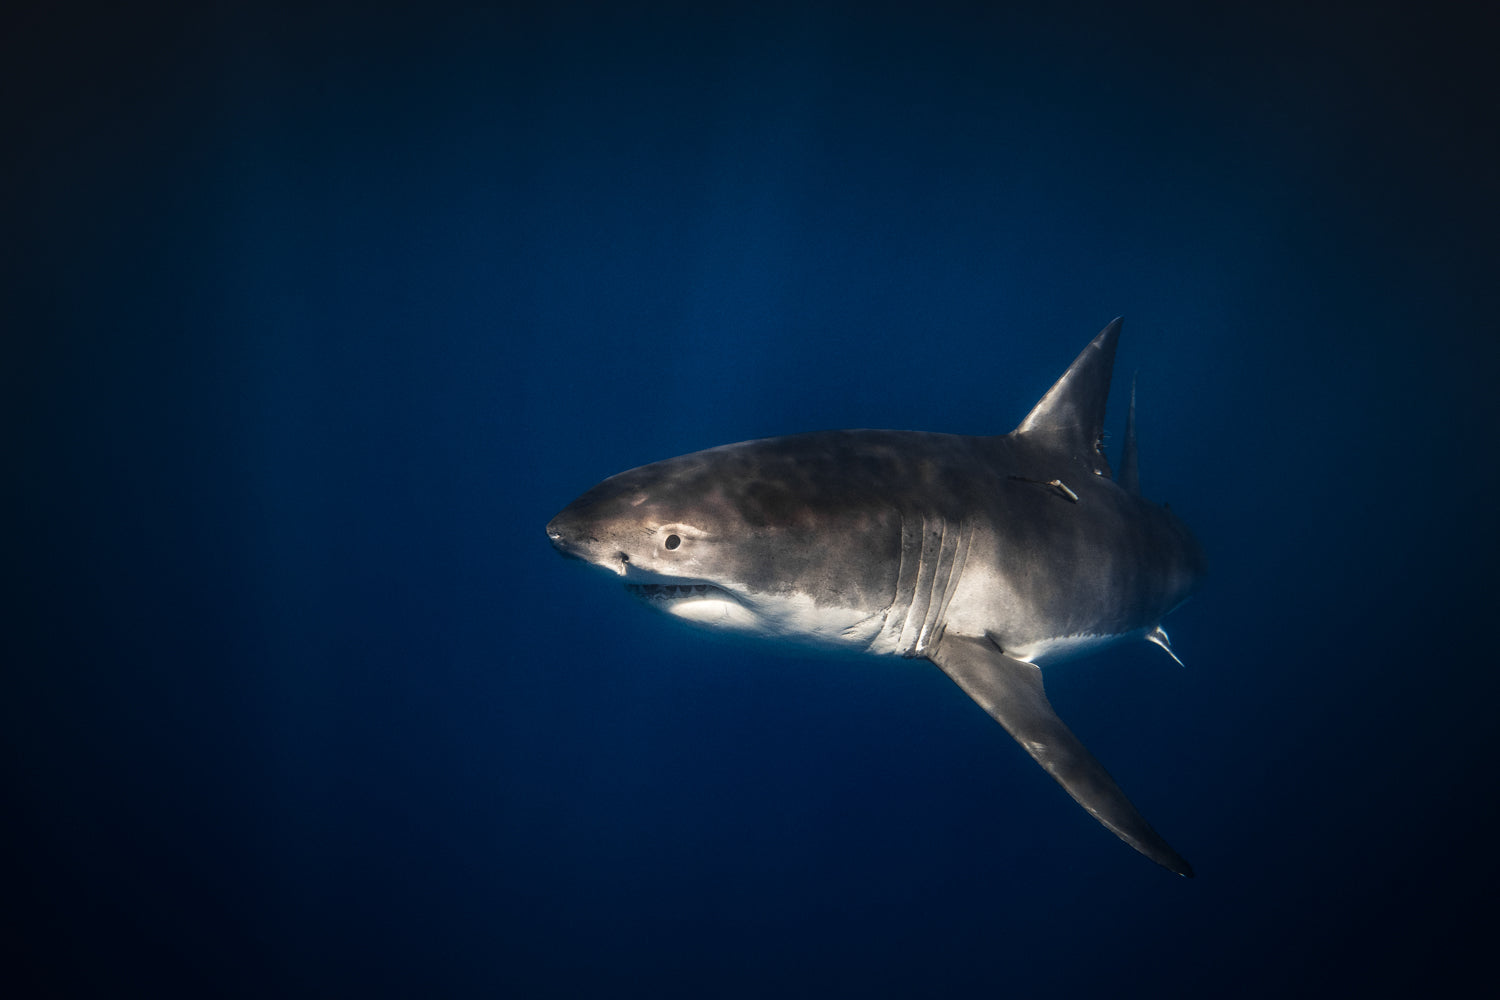 An attentive Great White Shark